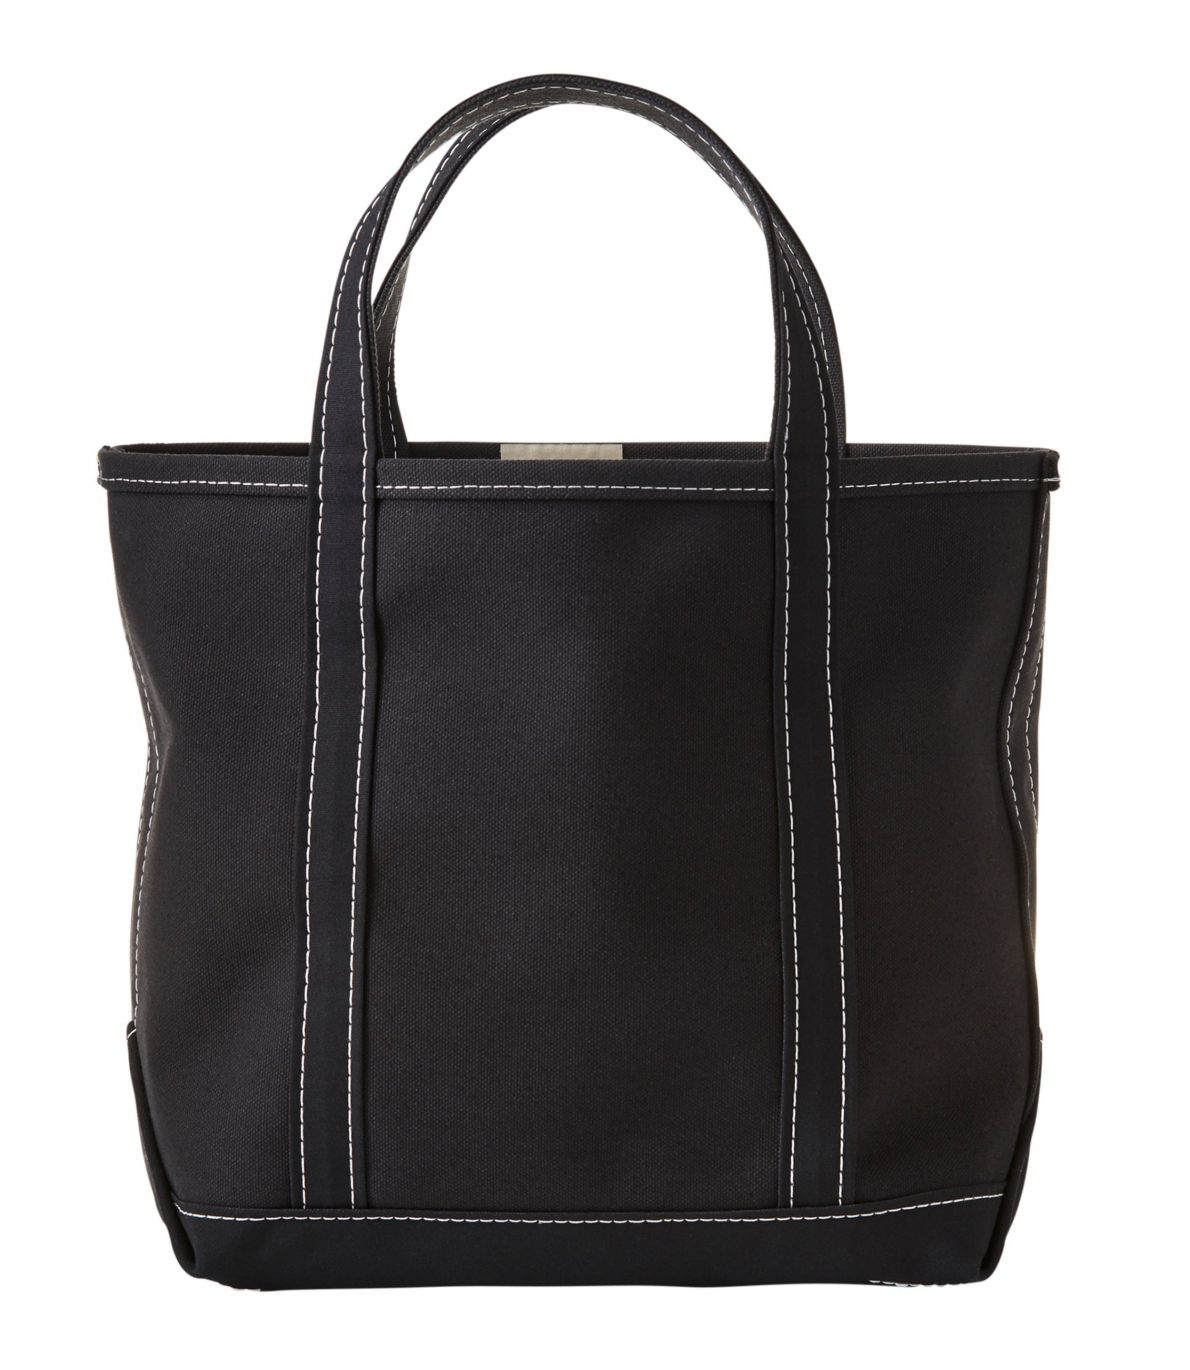 Boat and Tote, Open-Top, Two-Tone